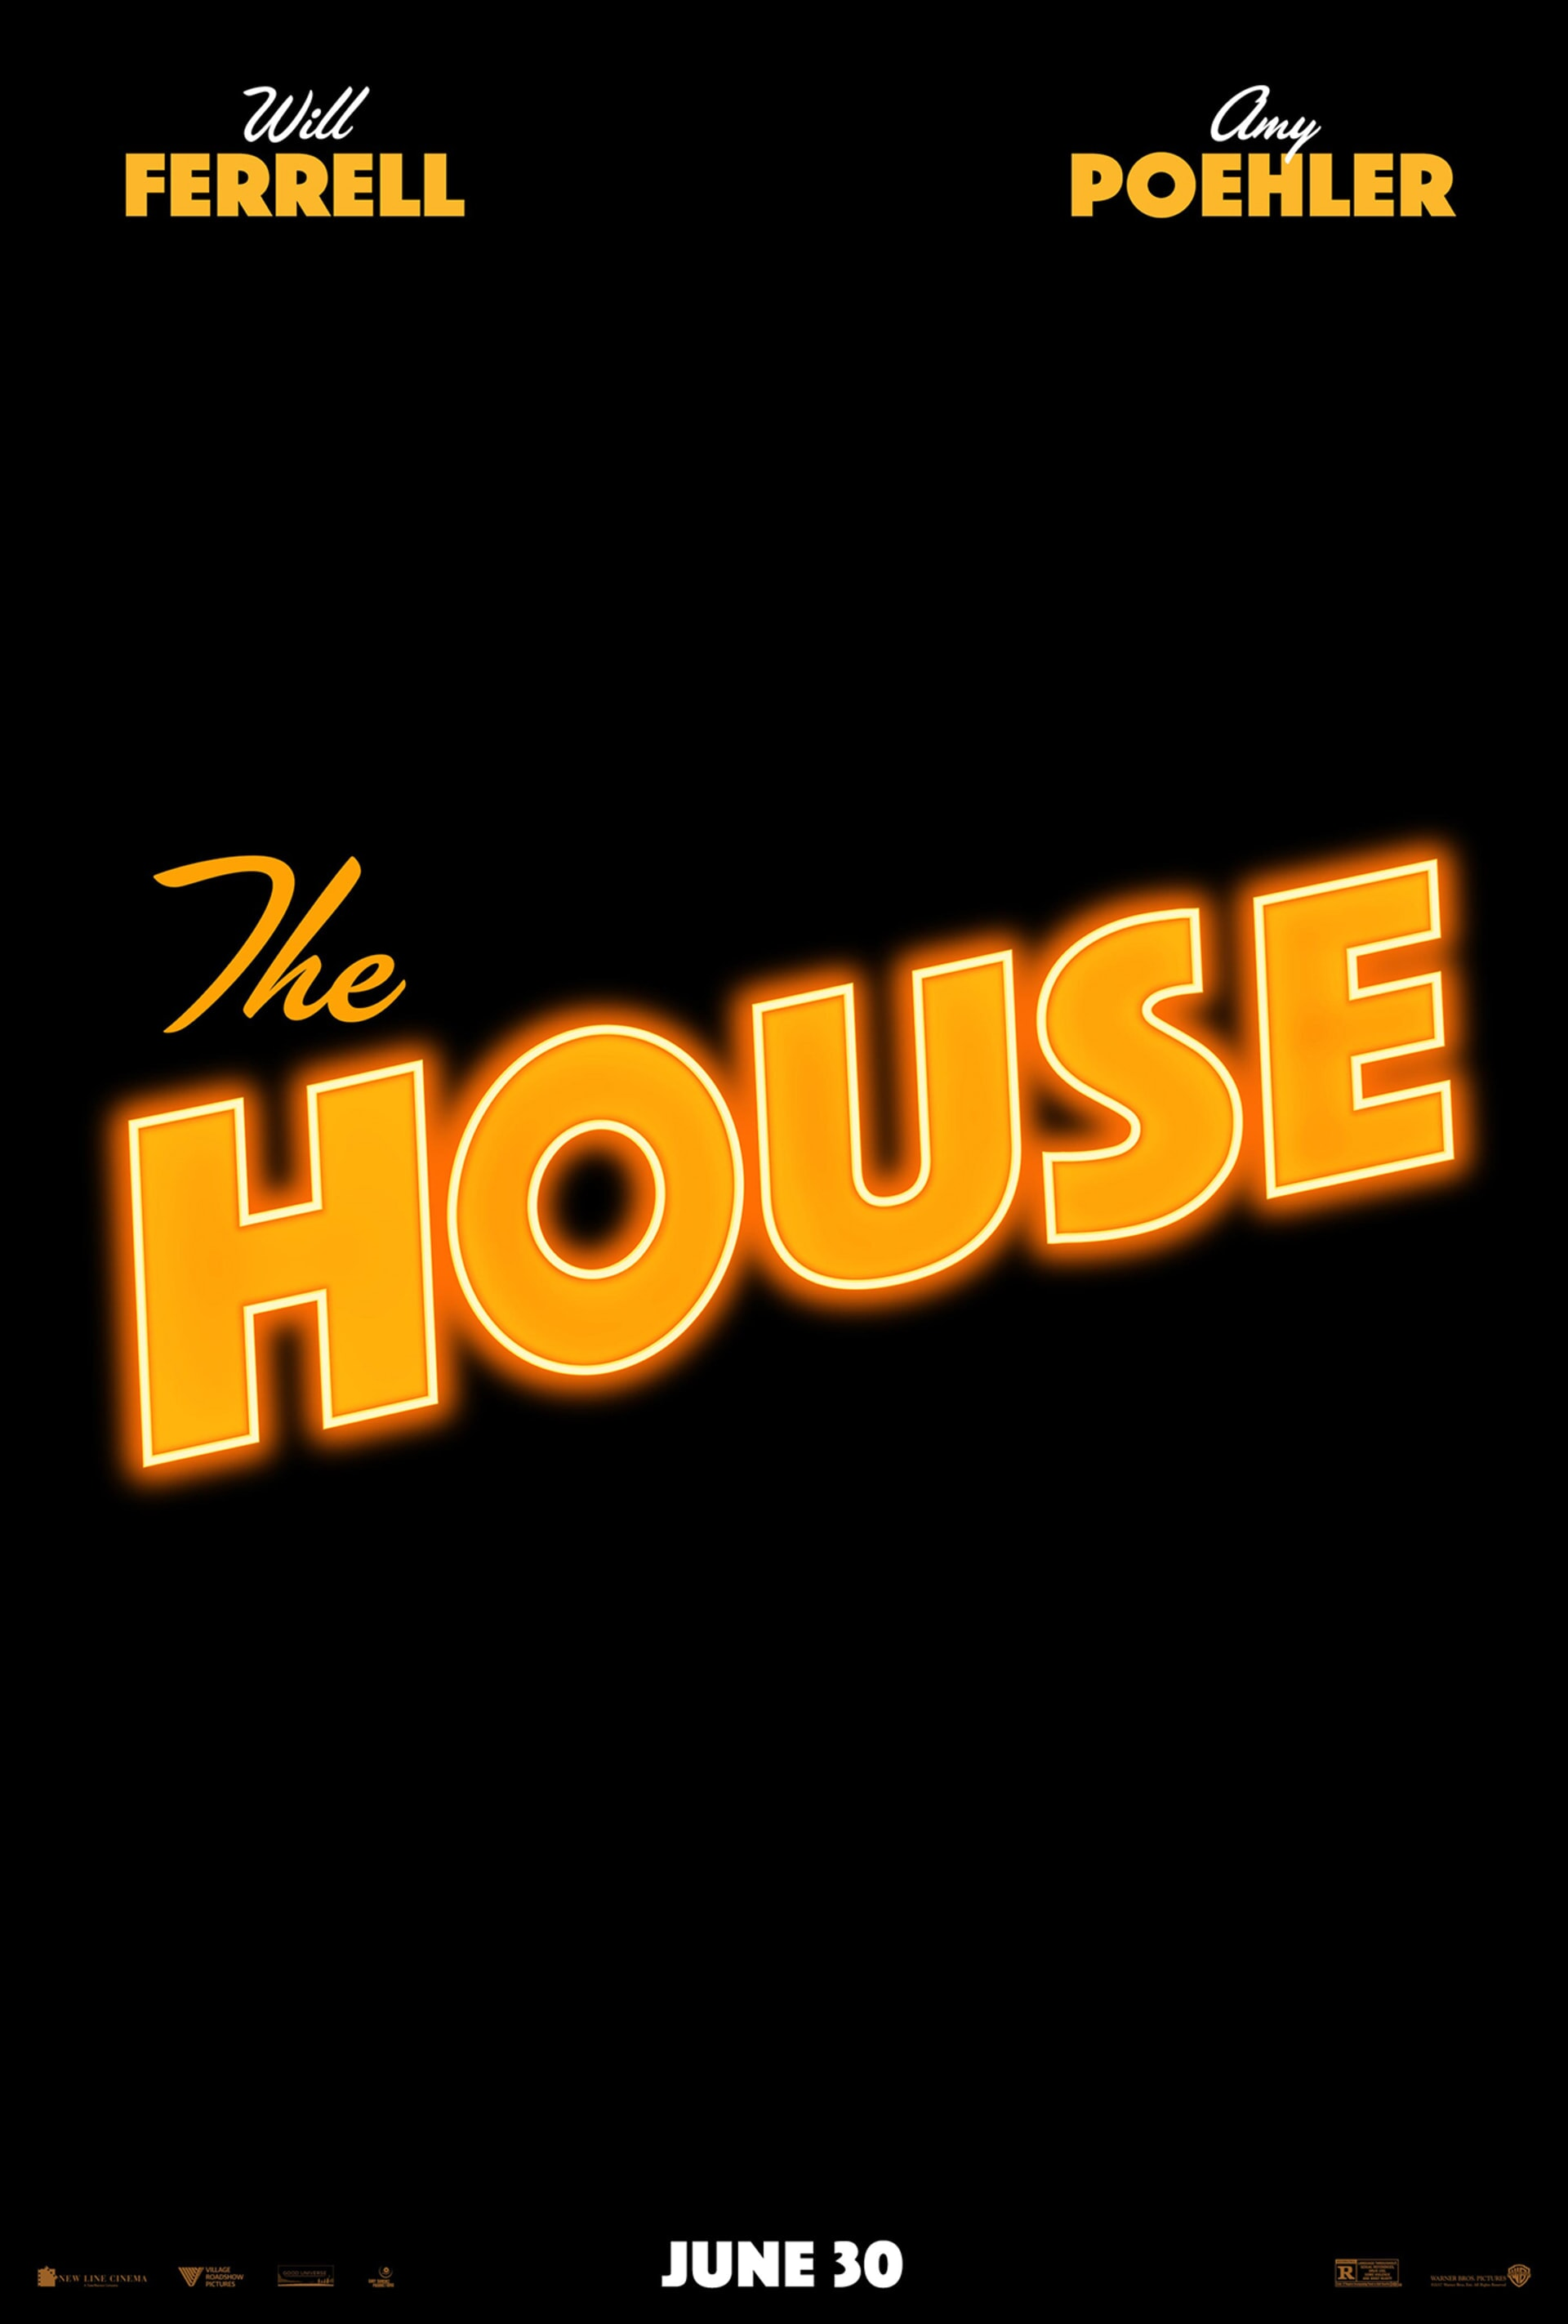 The House poster - logo in bright orange on black background